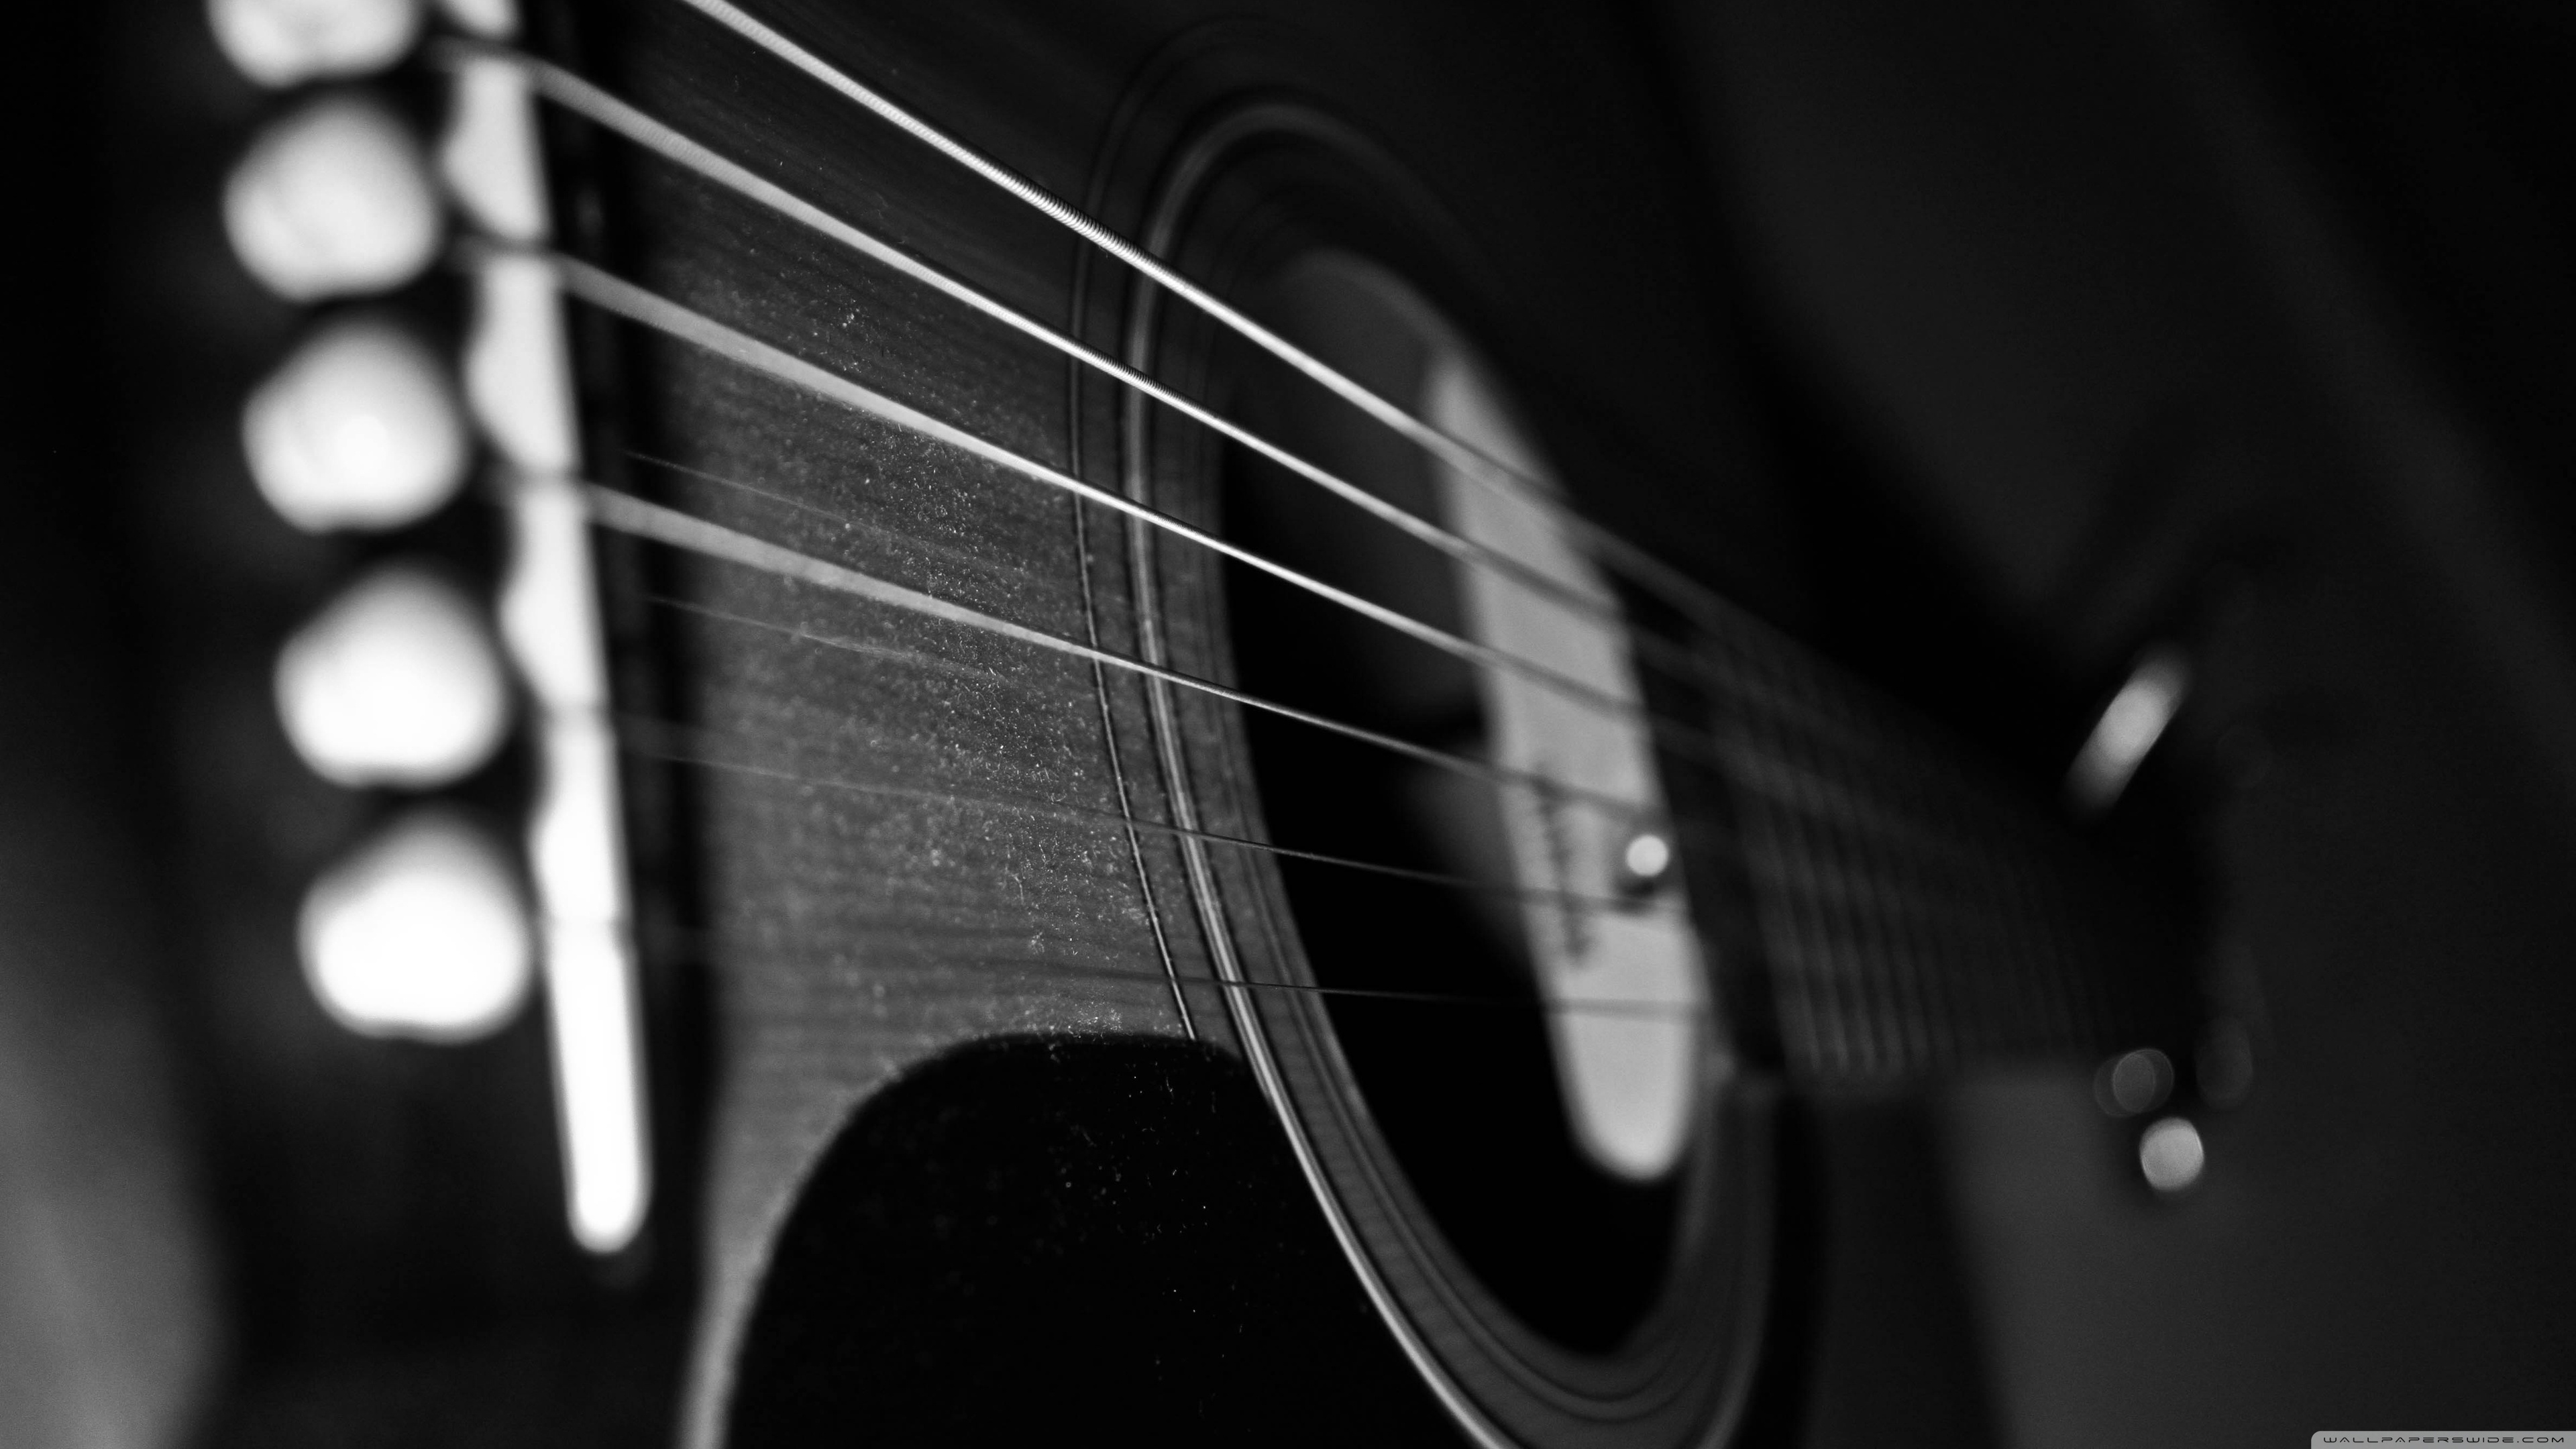 10 Top Music Note Wallpaper Hd Full Hd 1080p For Pc: Guitar Wallpapers High Quality